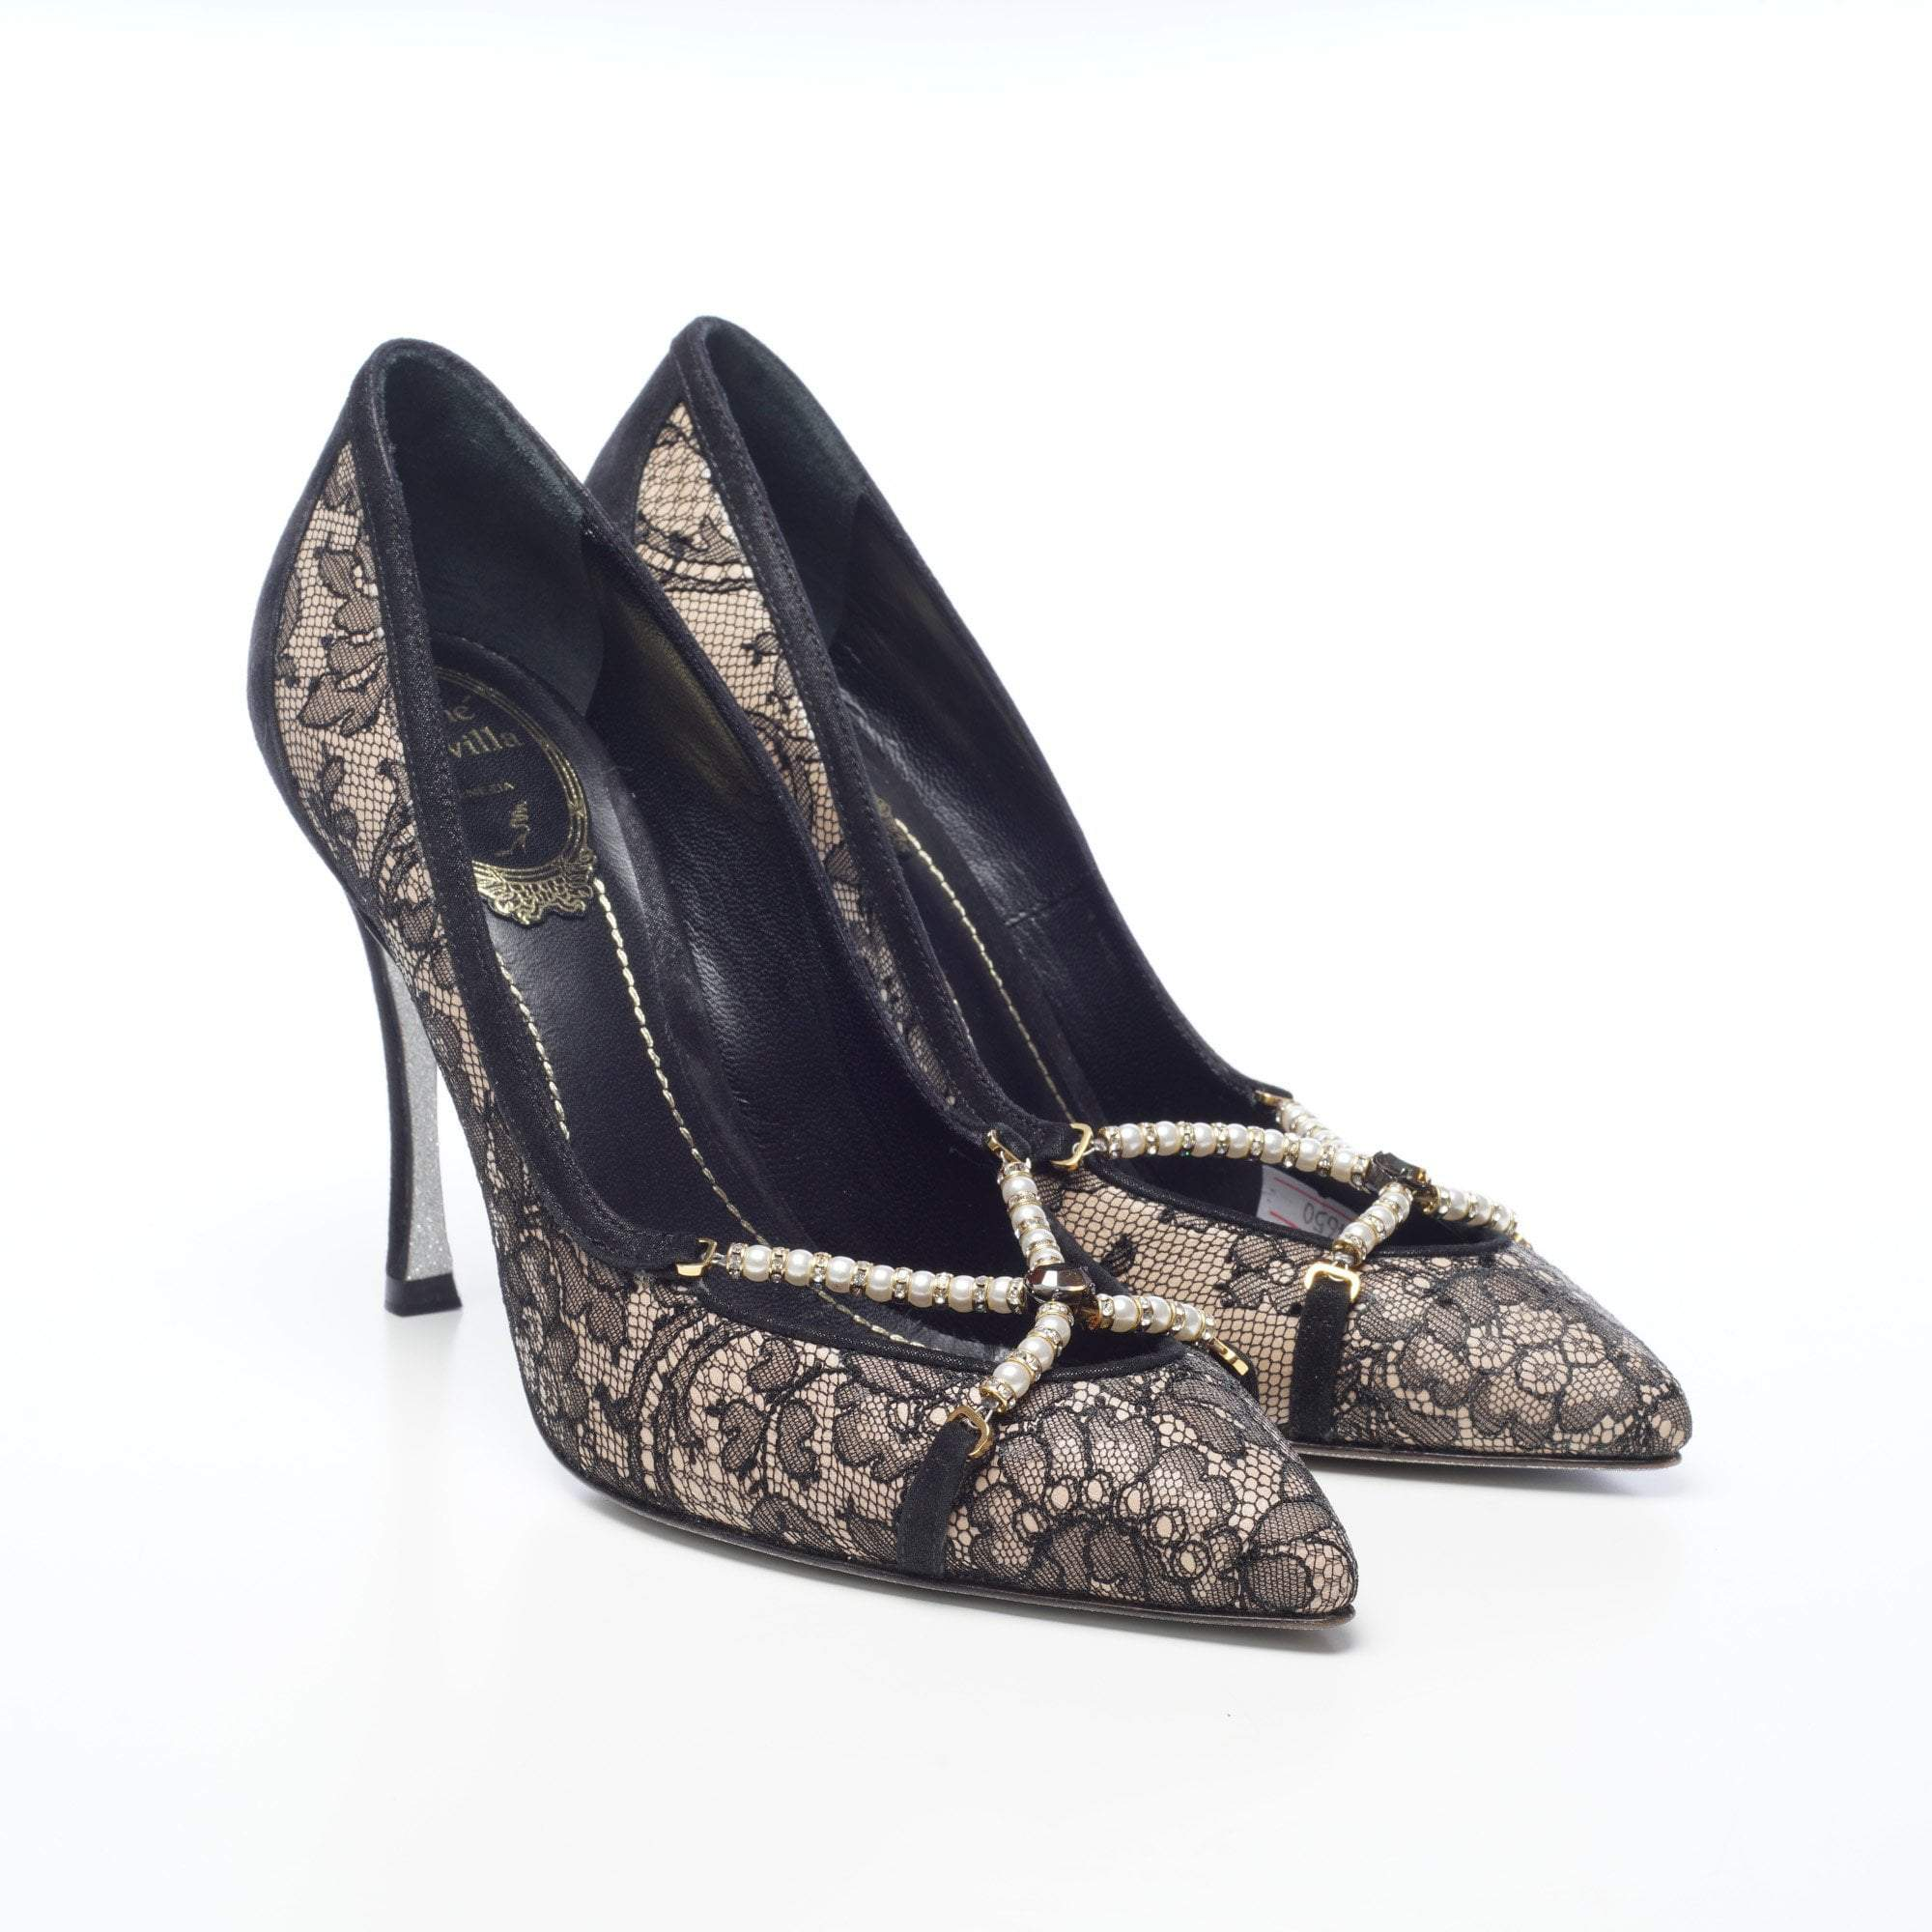 René Caovilla Black Lace Pumps with Beads